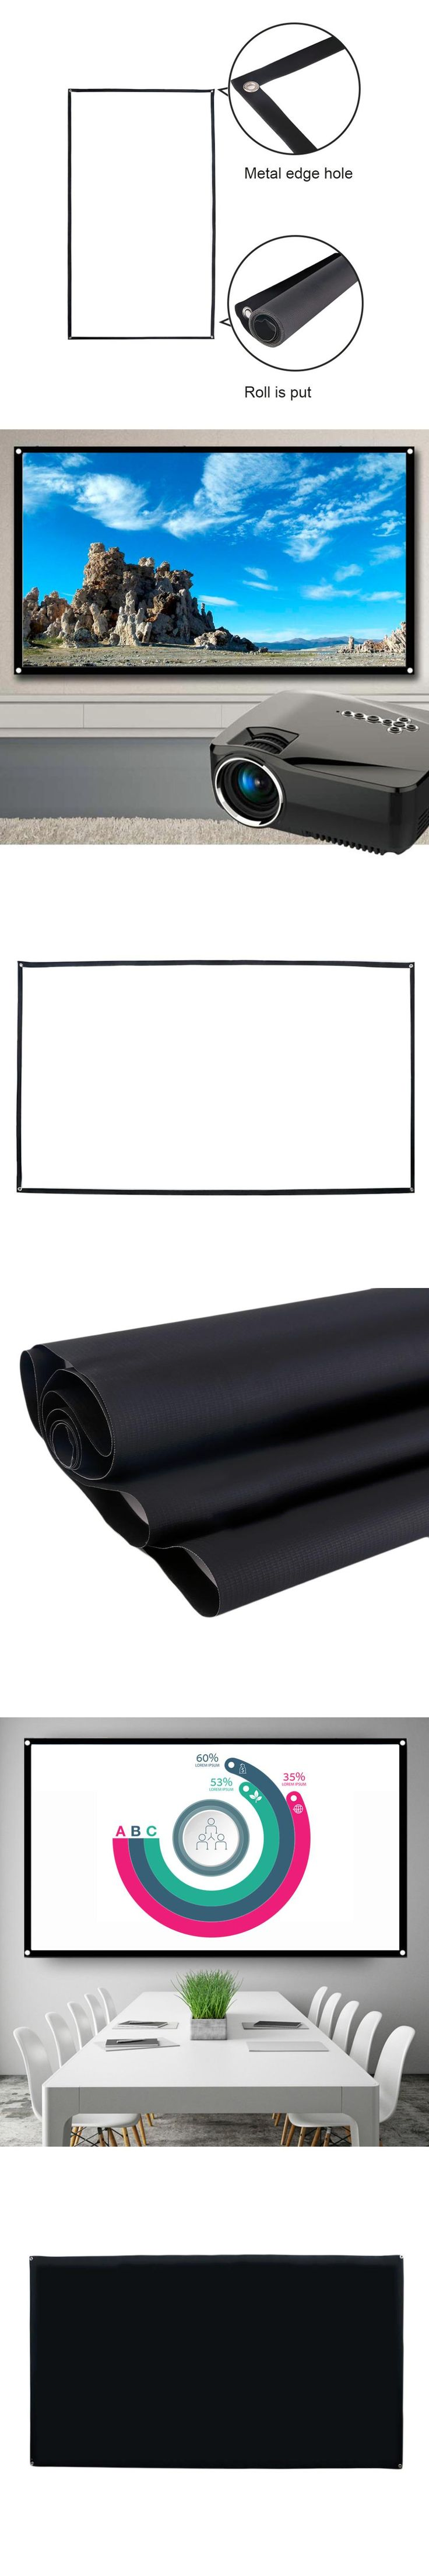 72 inch 16:9 Portable White Projector Screen Fabric Material Folded Projection Screen High-definition Curtain Hot Sale